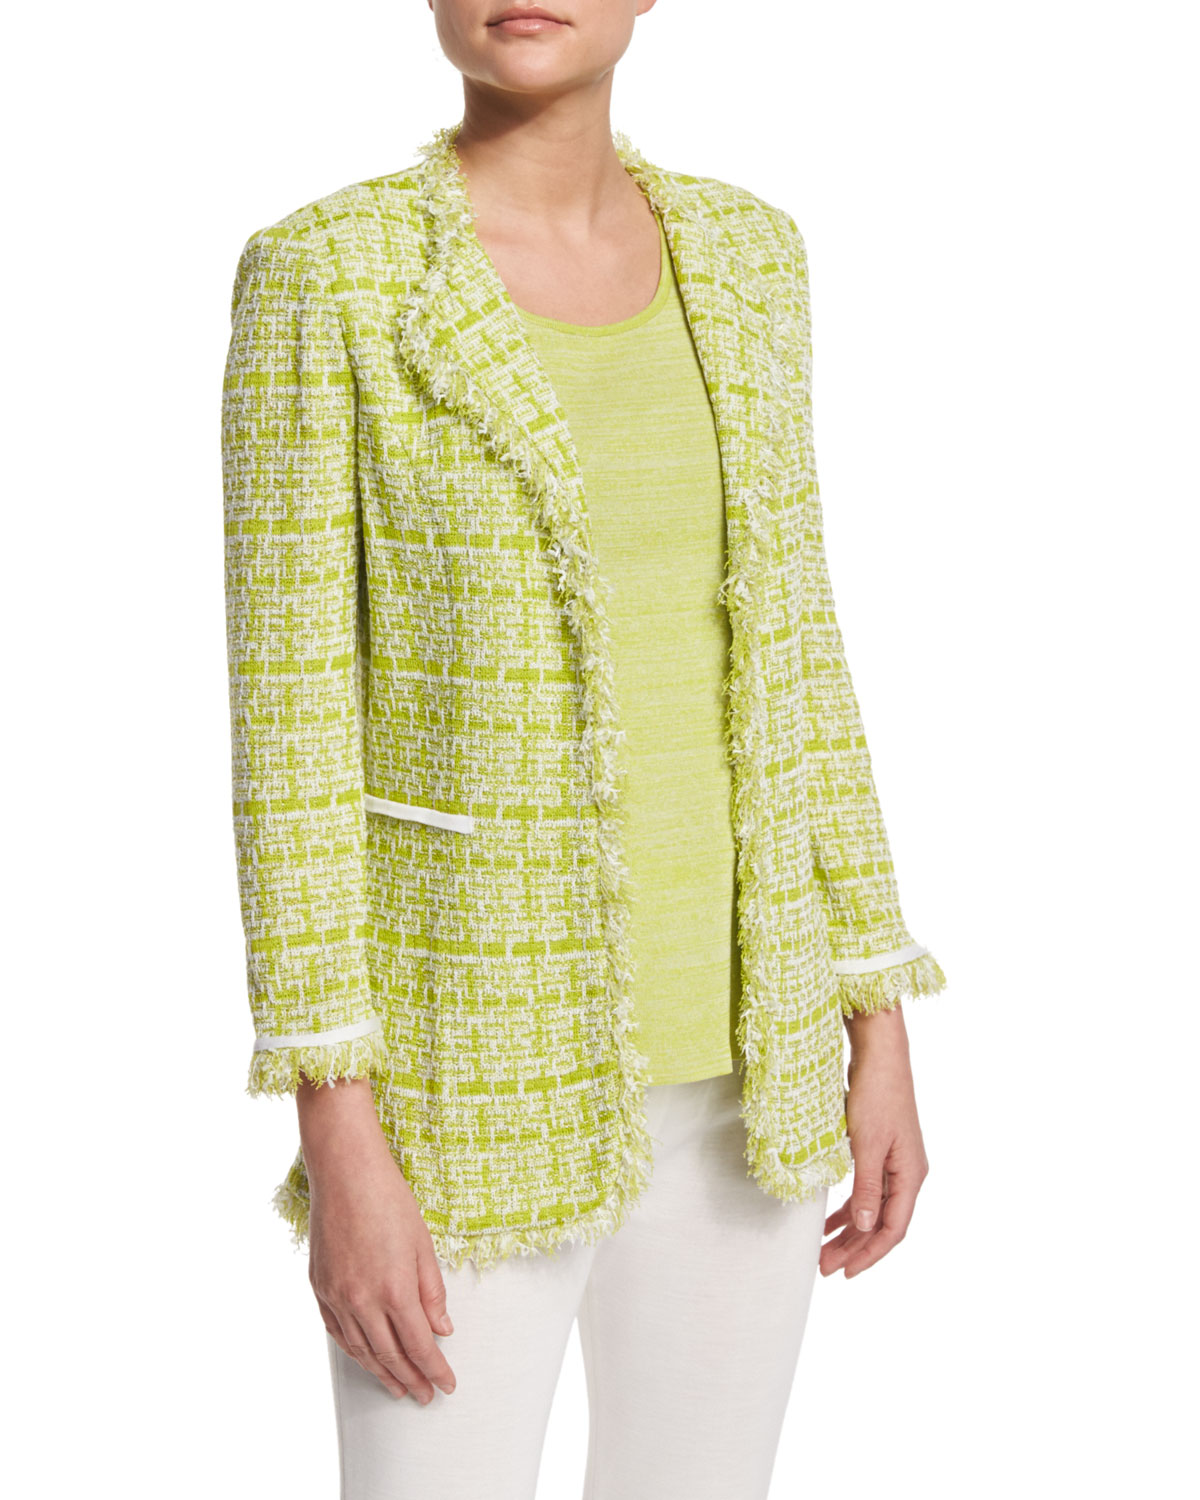 Tweed Jacket with Fringe Trim, Plus Size